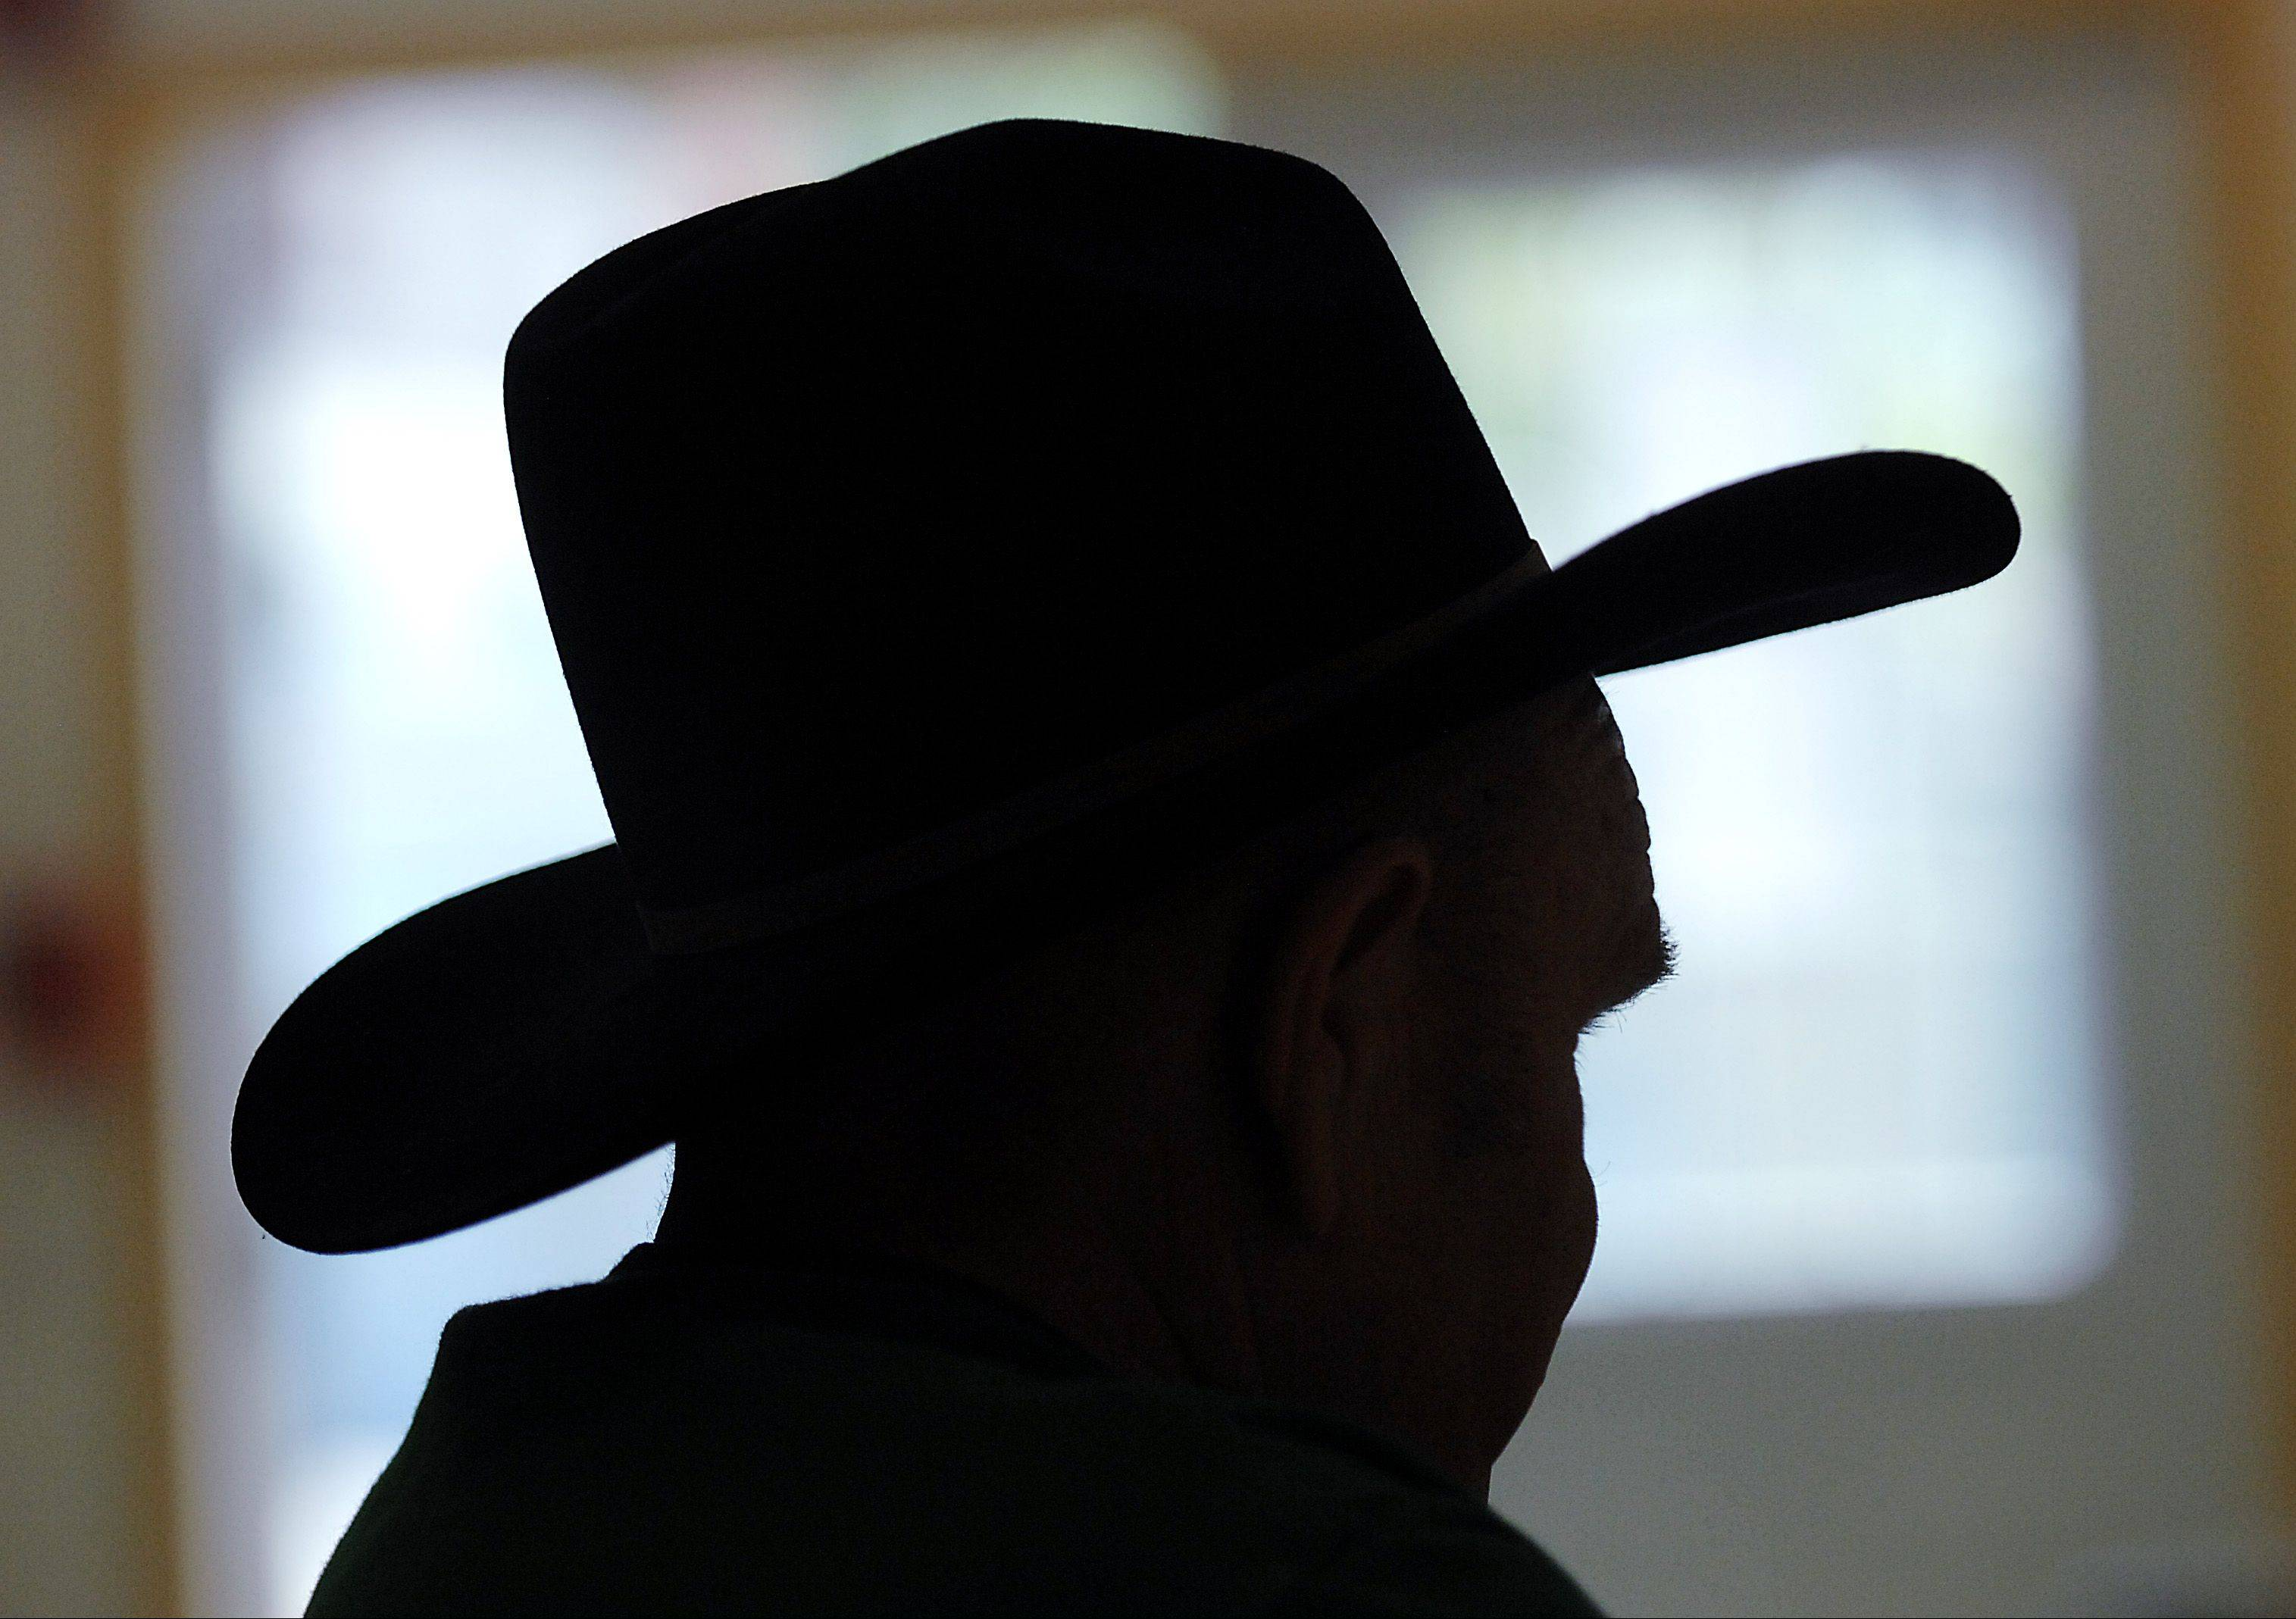 Thompson became known to locals as Cowboy Joe because he was always seen wearing a cowboy hat. These days, he wears other hats as often as his western wear.